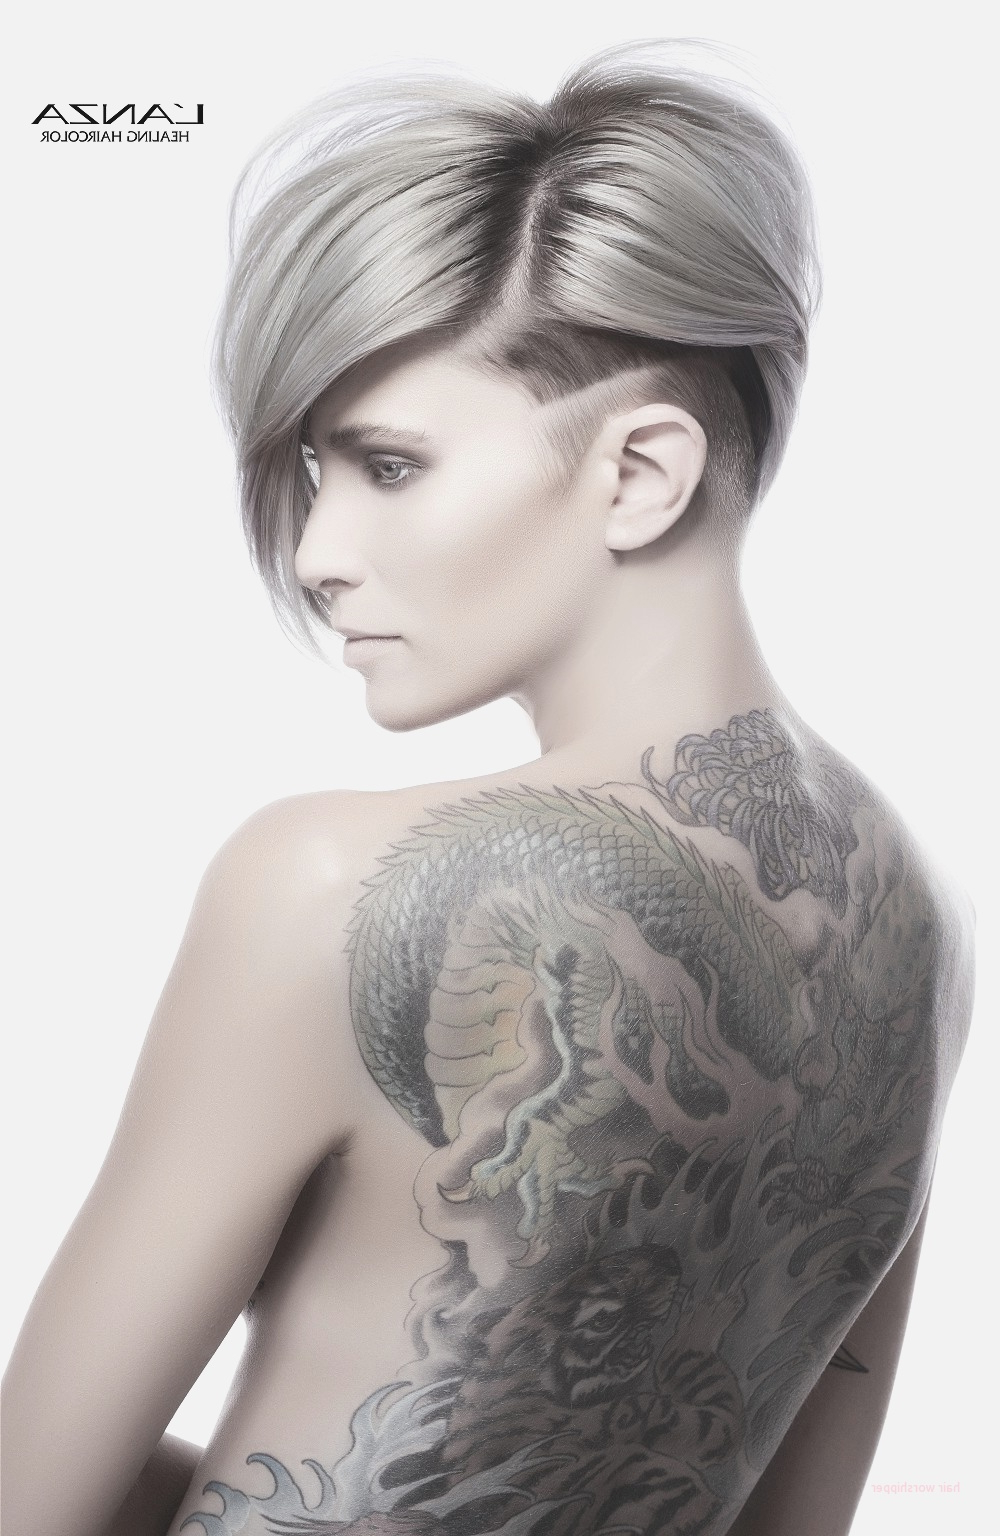 Summer Hairstyles 2016 Short Hair Unique 50 Hairstyles For Short Pertaining To Summer Hairstyles For Short Hair (View 25 of 25)